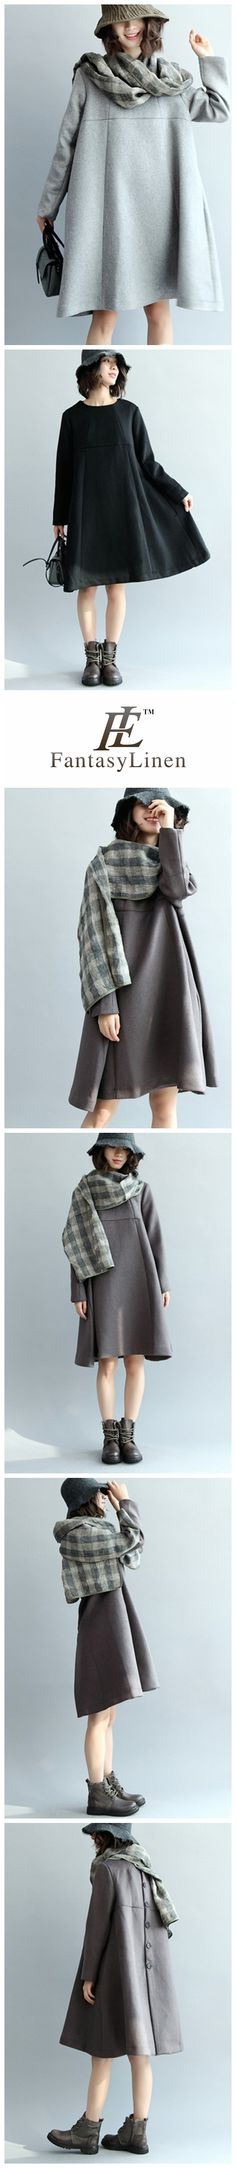 A-Style Simple Wool Dress, Long Sleeve Loose Dress Q5437 Q5437Brown